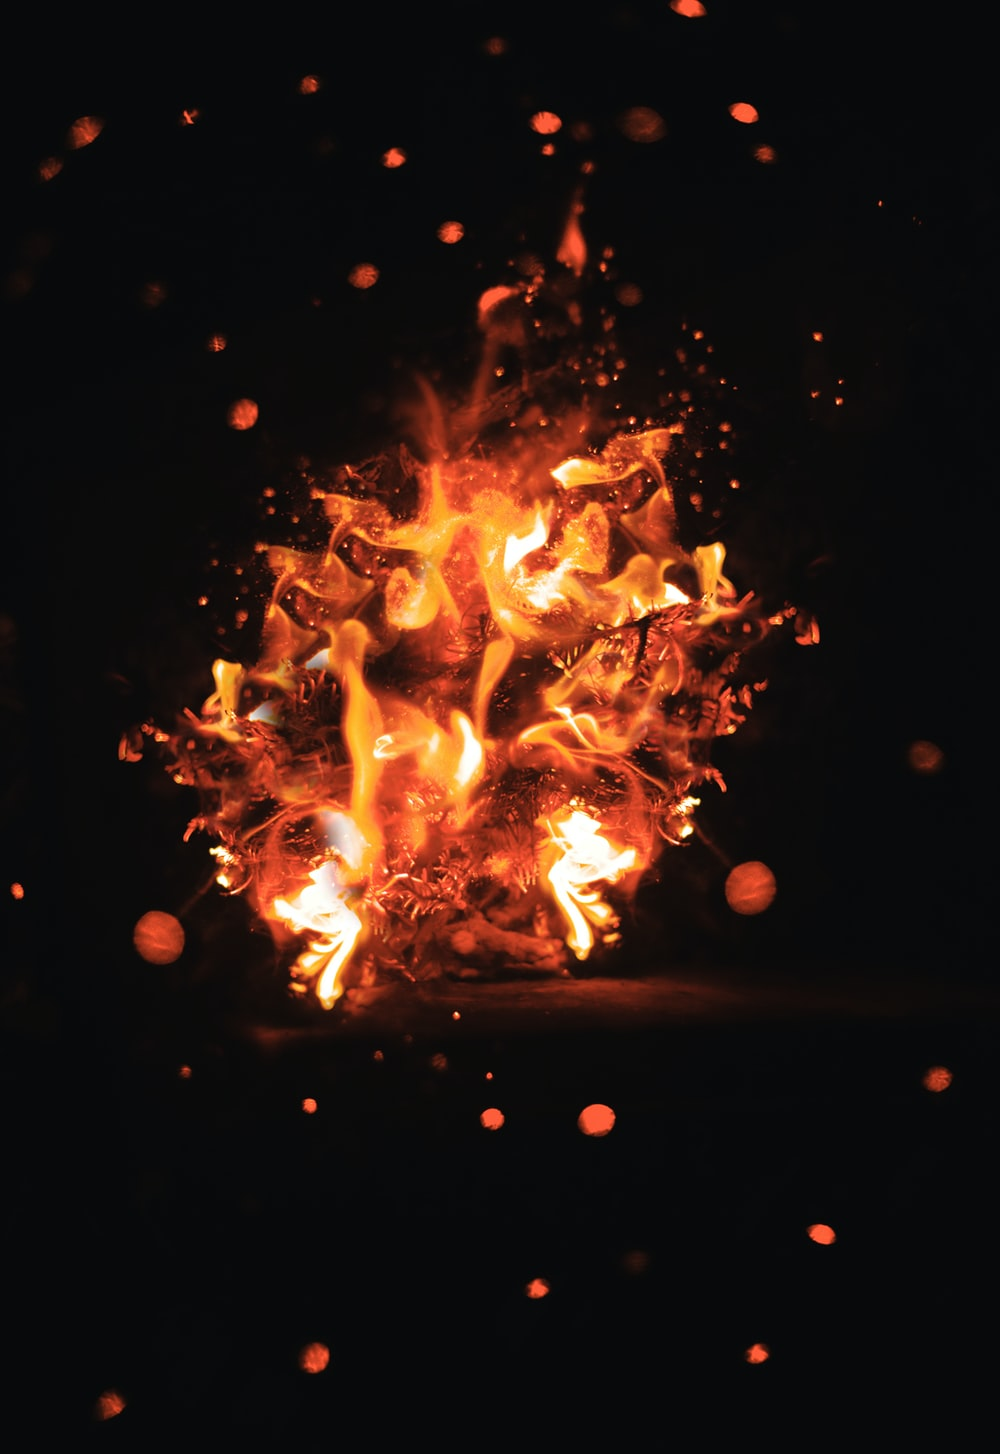 close-up photo of bonfire